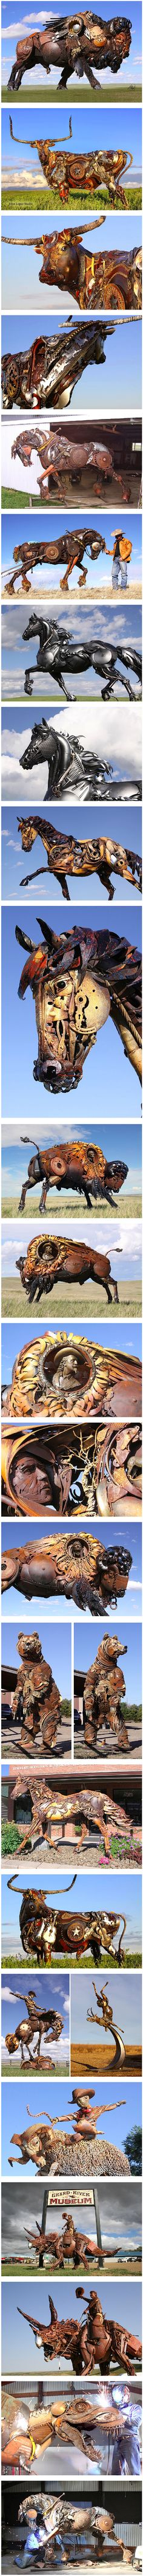 John Lopezn, an ambitious sculptor, actually takes scrap metal from old farming equipment and turns them into remarkable, life-size sculptures of animals—including buffalo, horses, cows, rams, antelope, bears, and even dinosaurs.